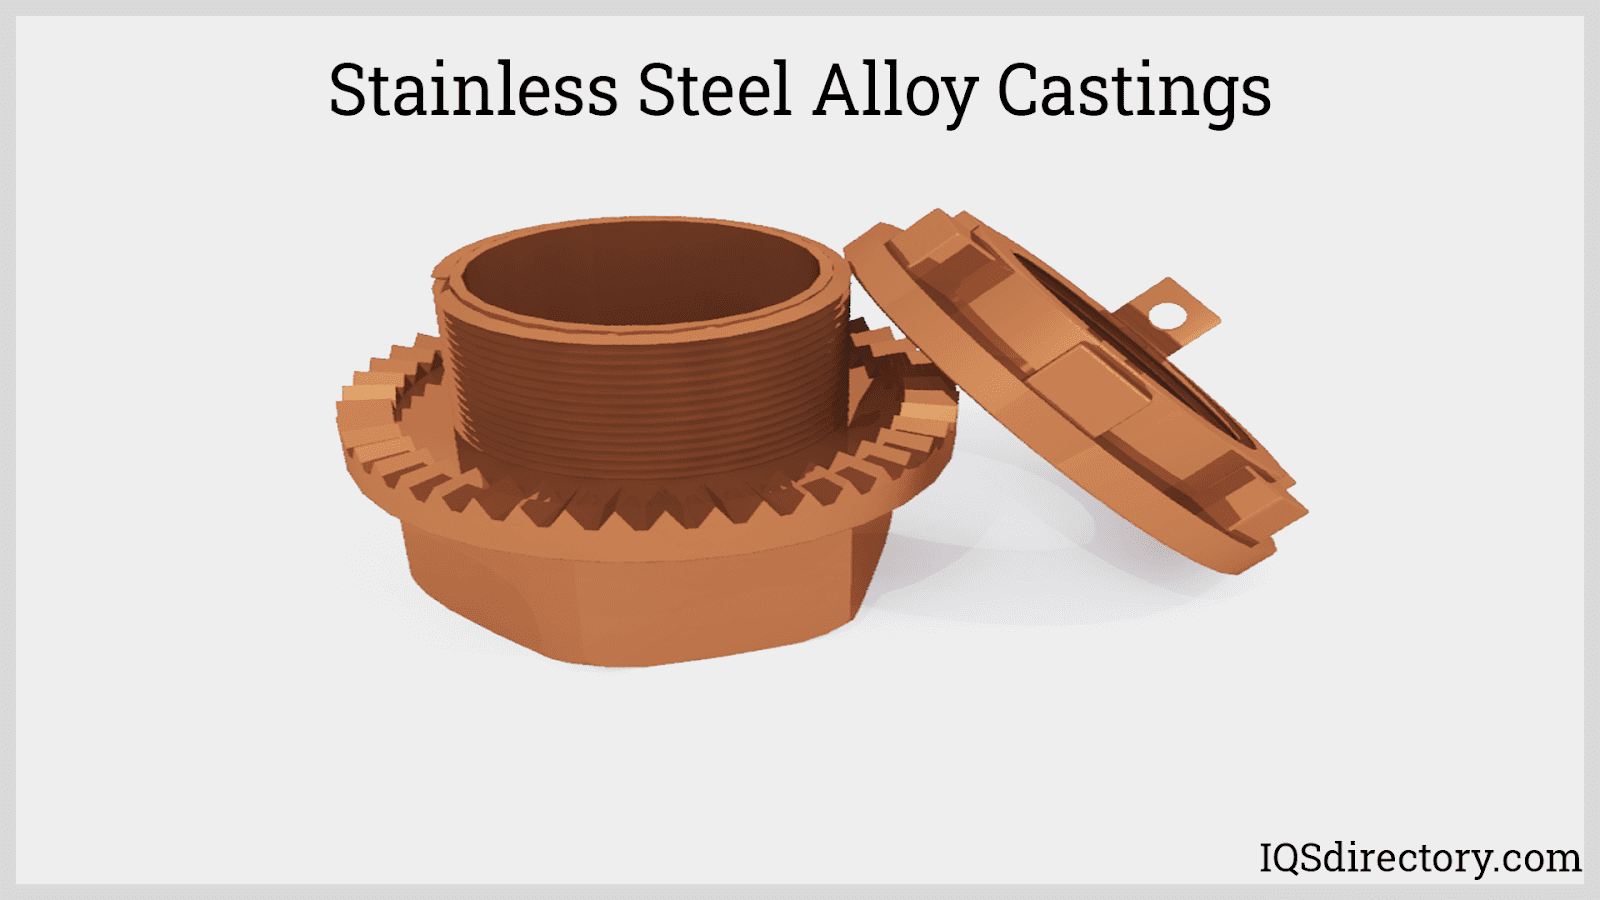 Stainless Steel Alloy Castings